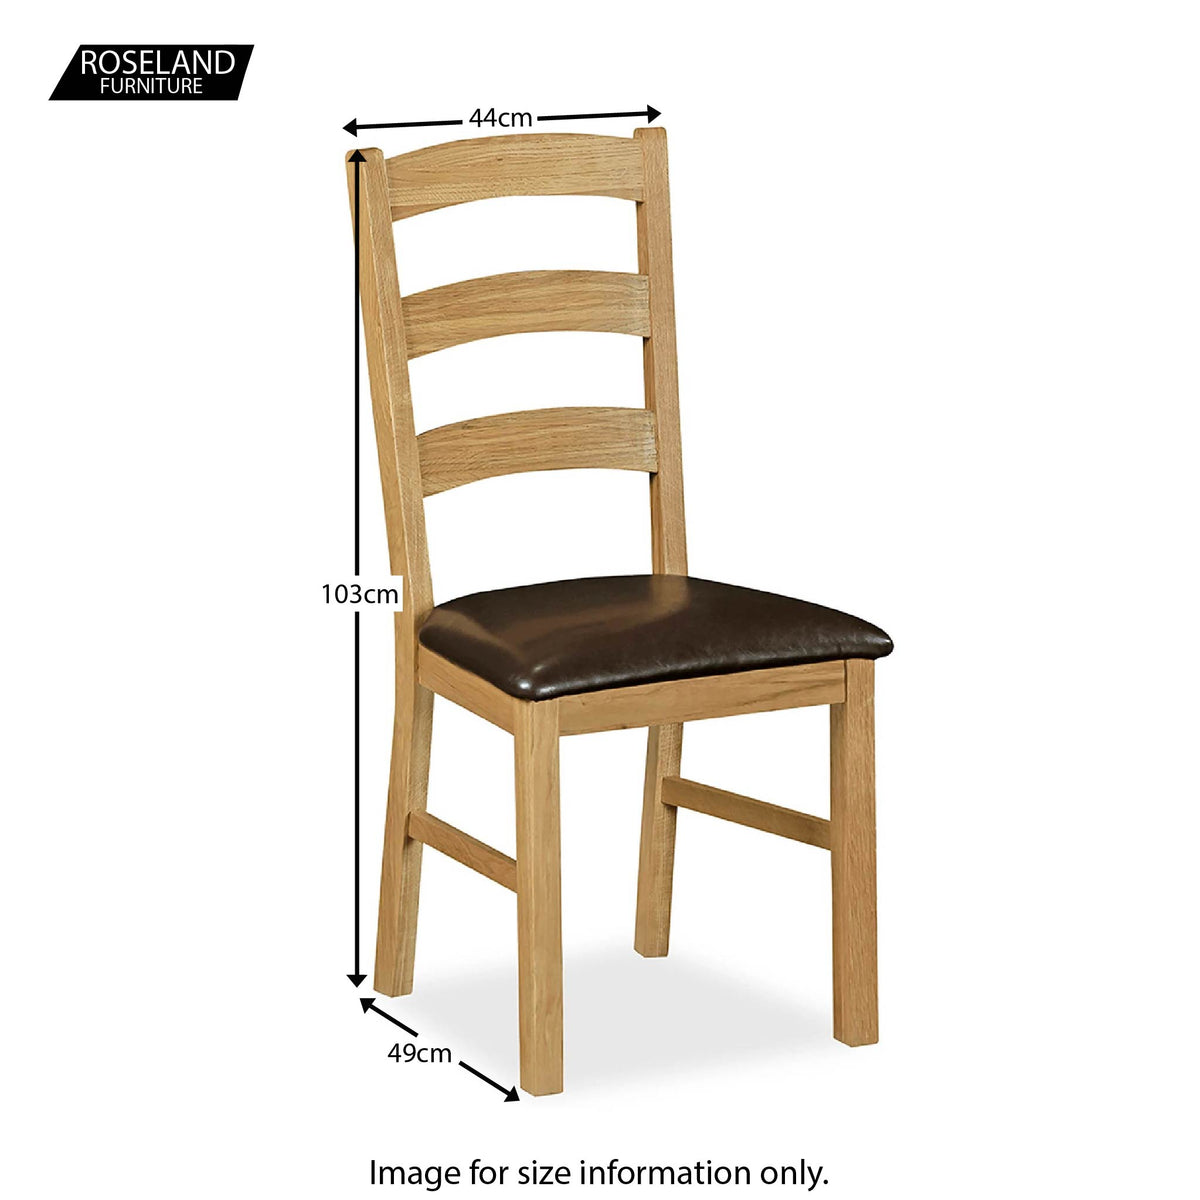 Lanner Oak Dining Chair - Size Guide